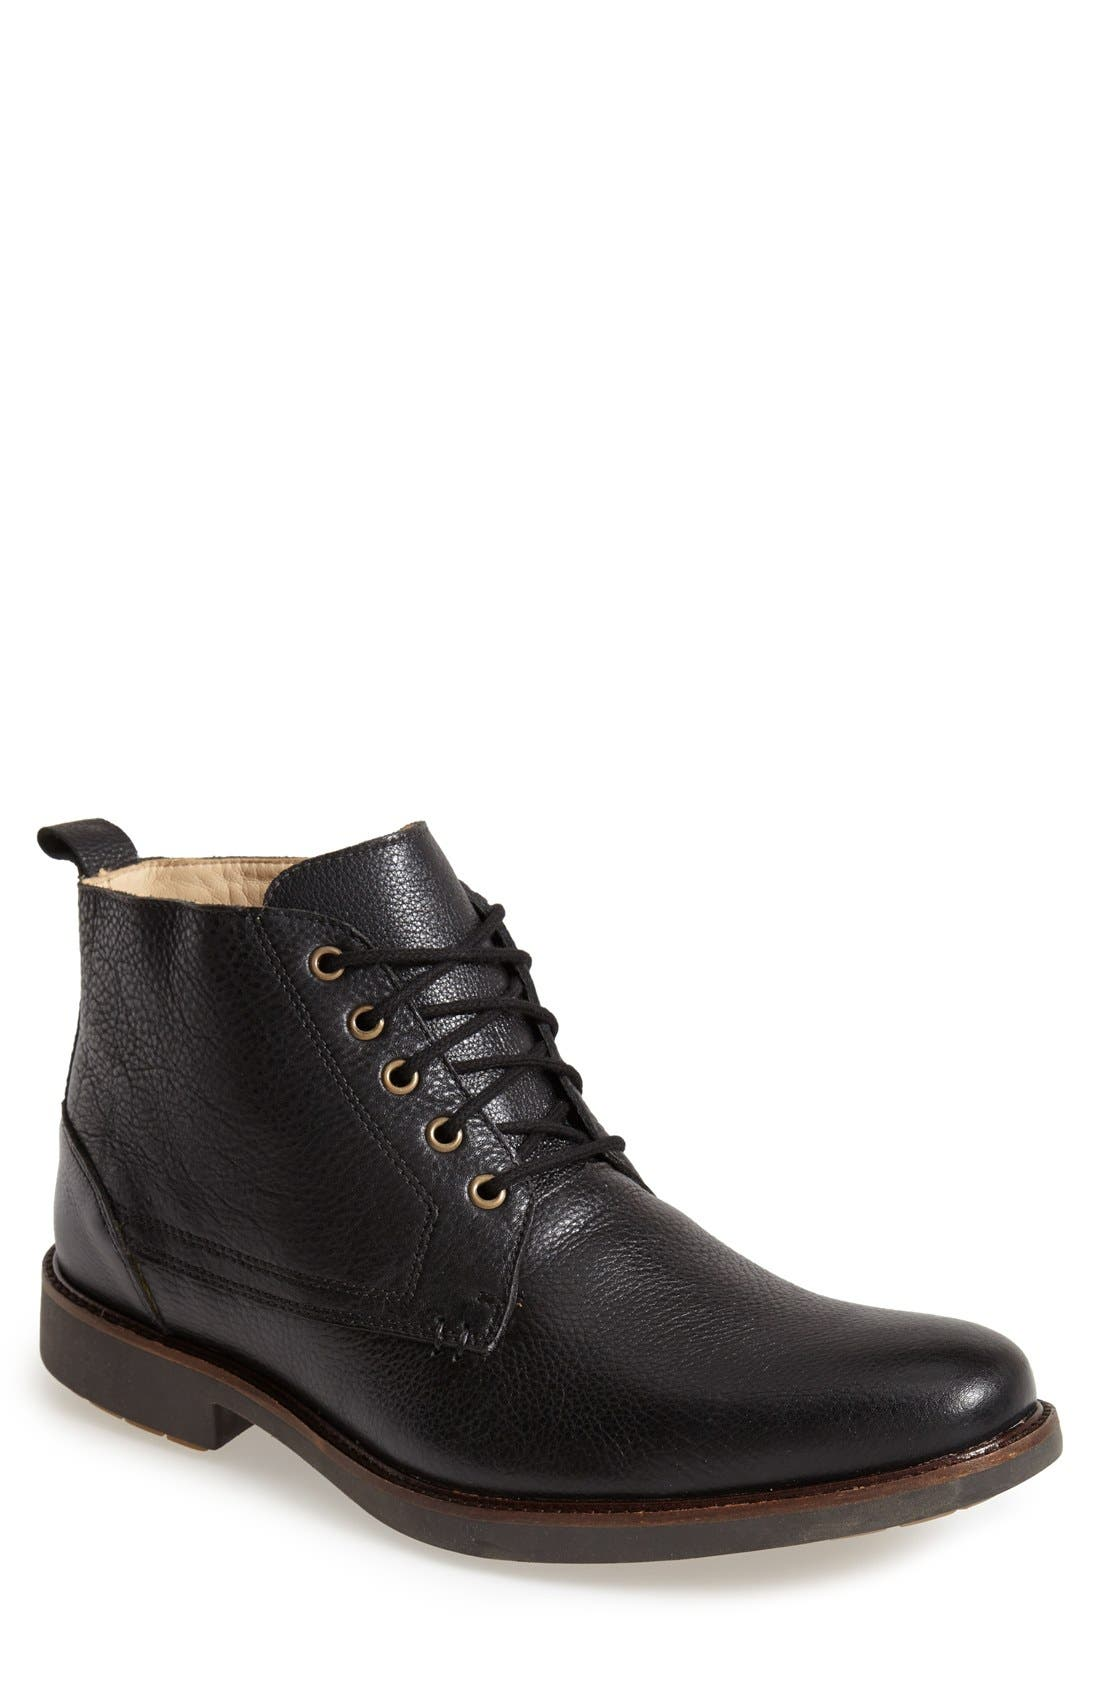 'Pedras' Boot,                         Main,                         color, 001